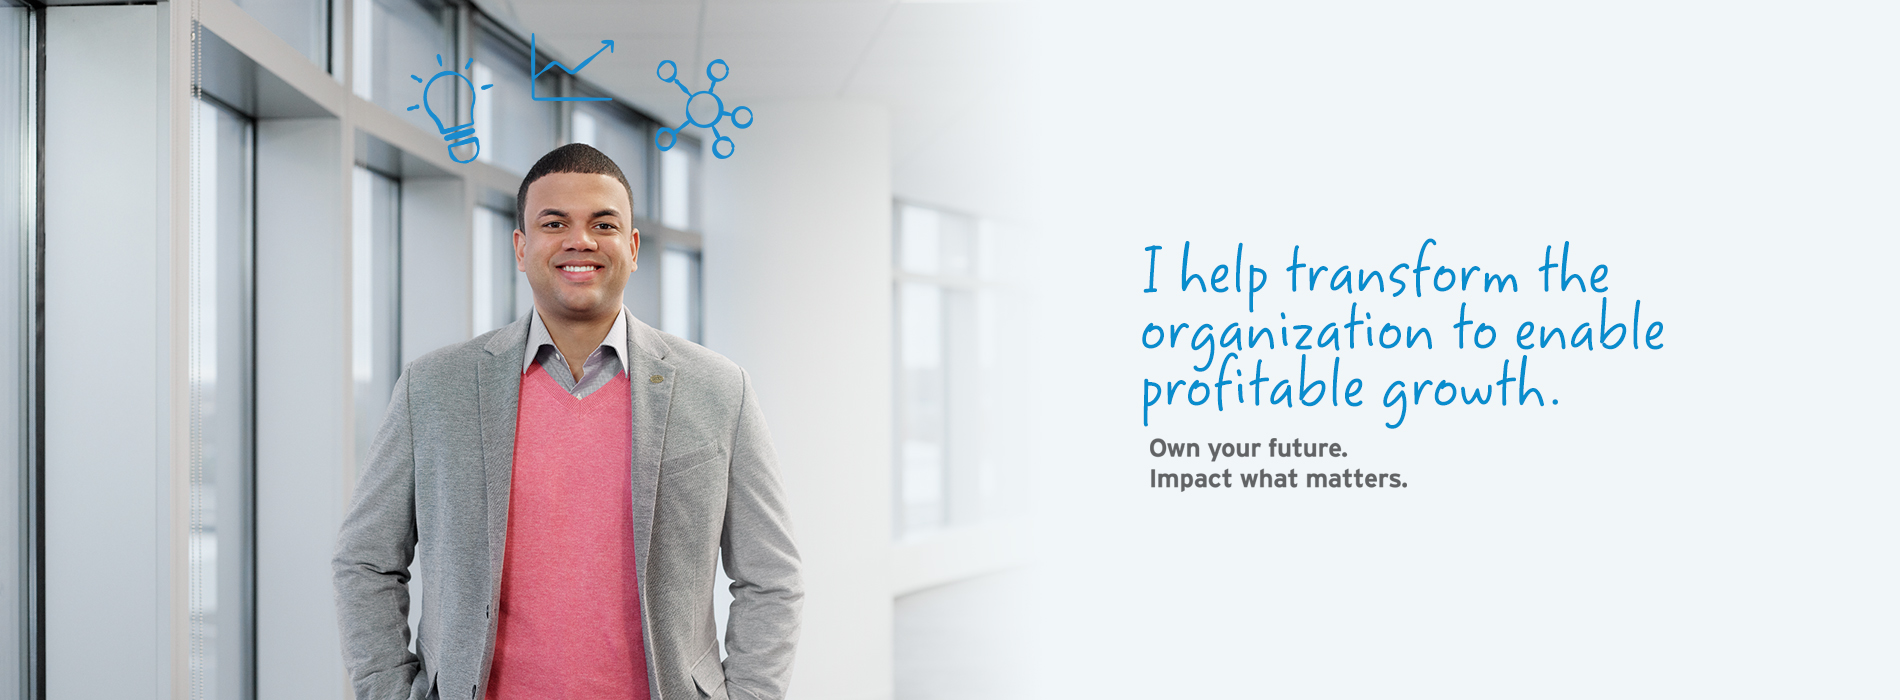 I help transform the organization to enable profitable growth. Own your future. Impact what matters.